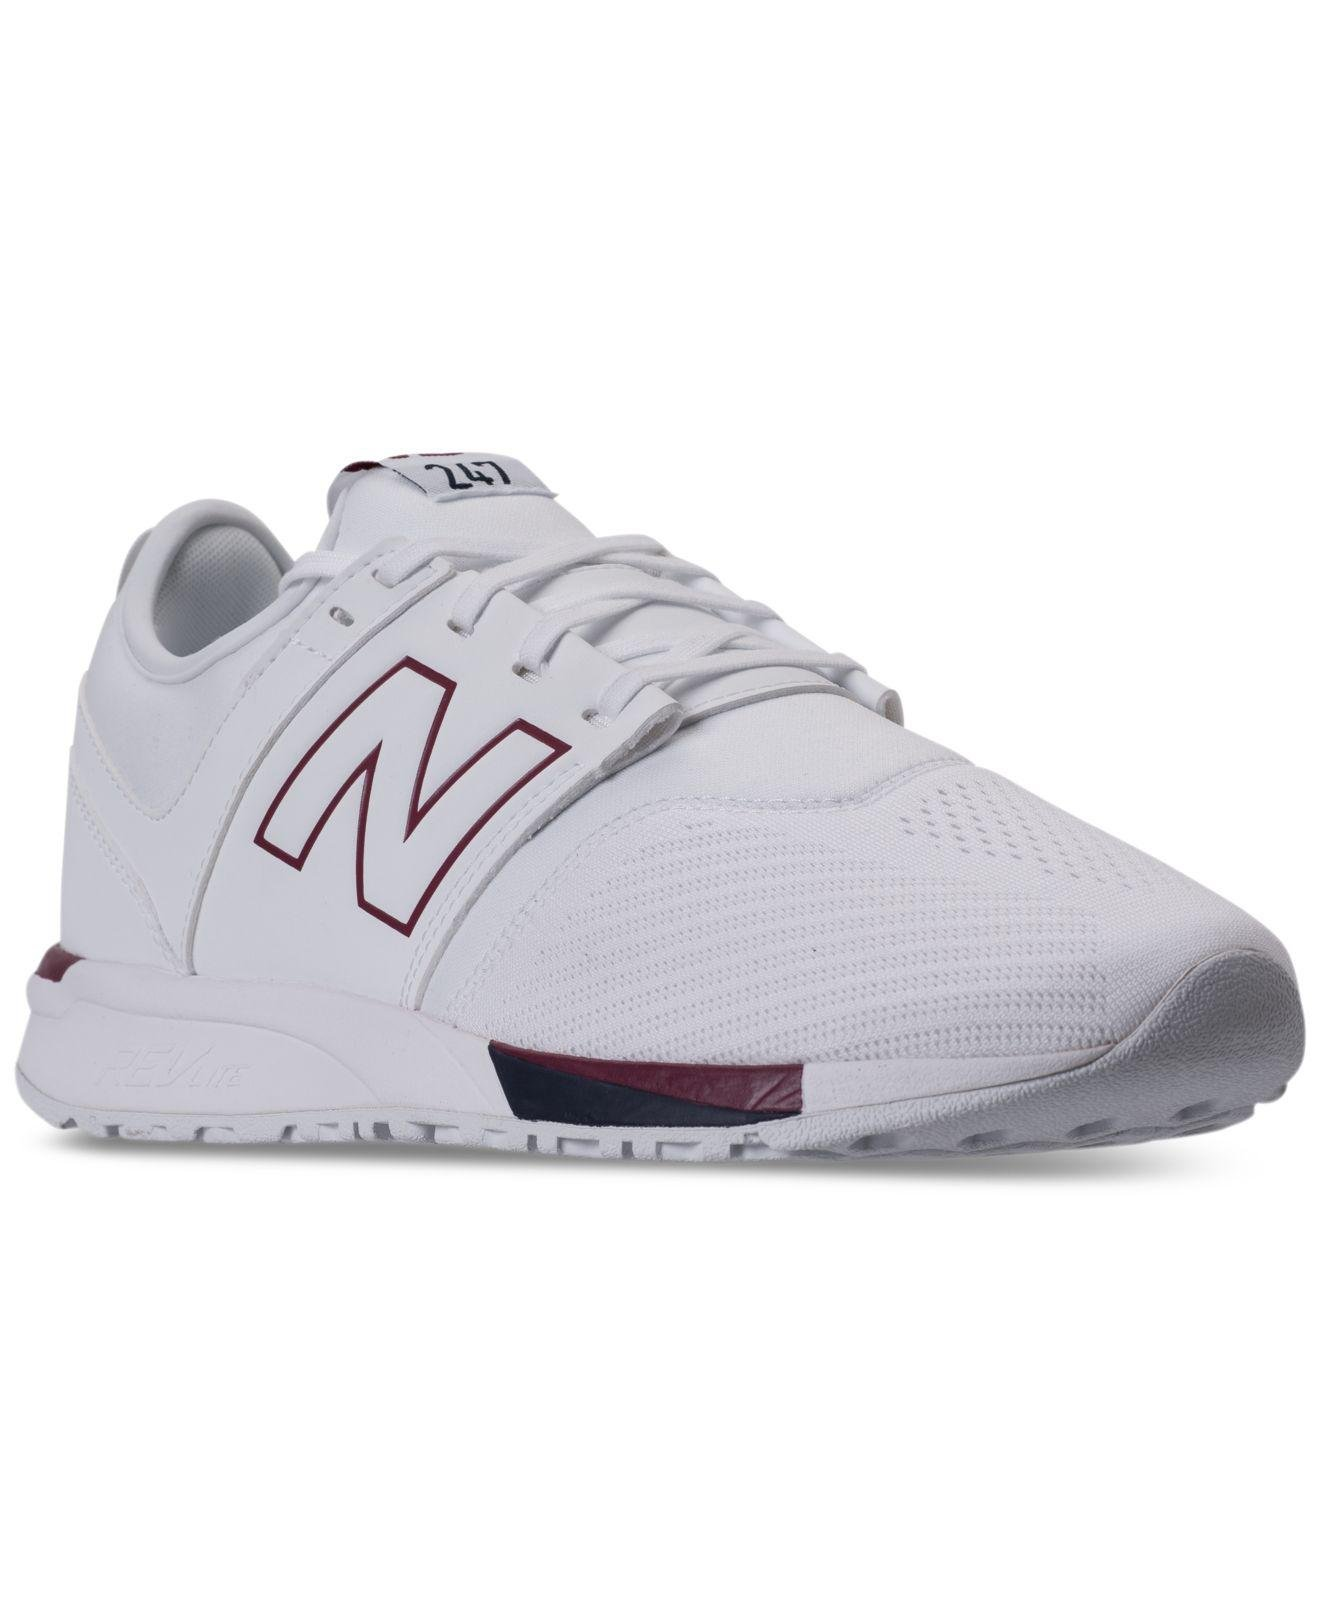 cb054c857278e Synthetic Synthetic Lyst For In In In 247 White New Balance Men Casual Men's  Sneakers qaaPpwI .